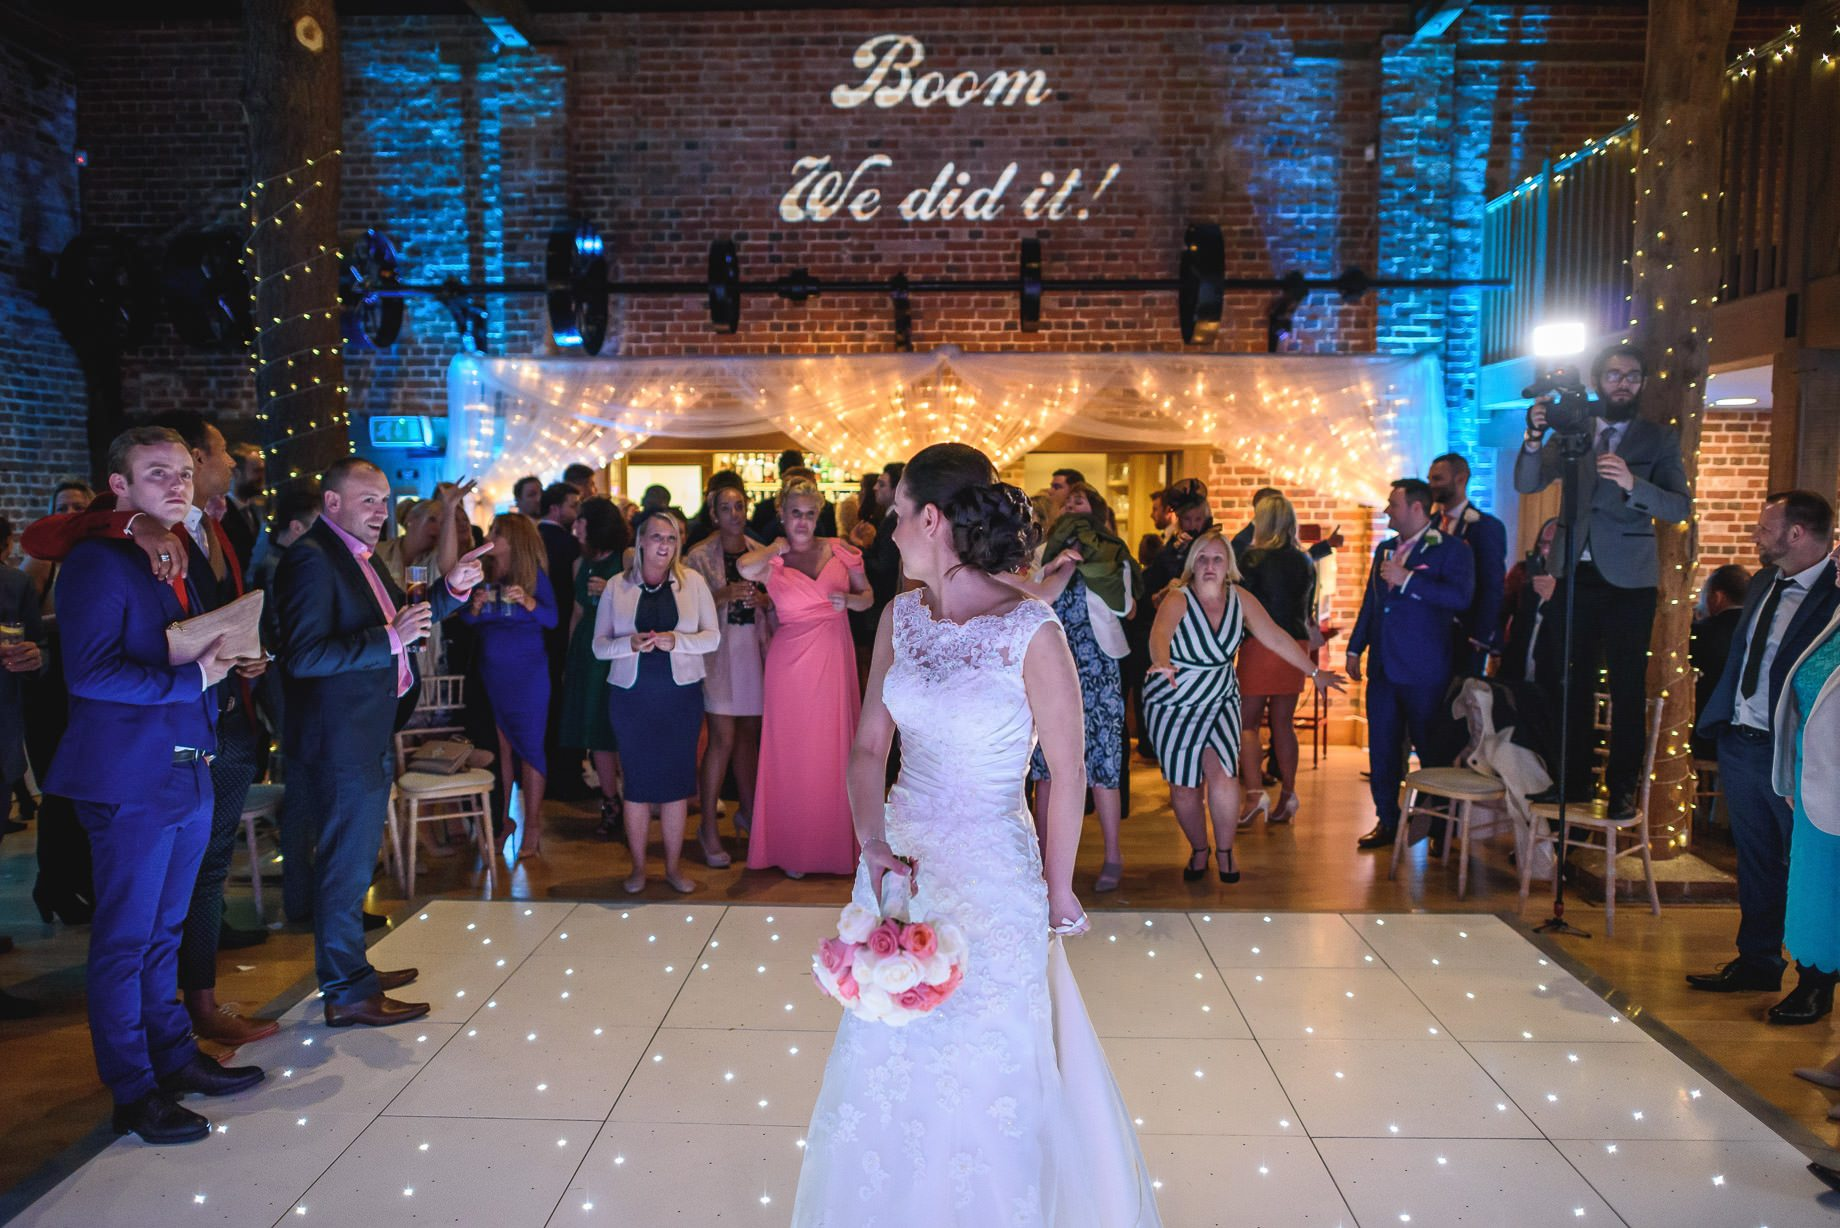 Best wedding photography by Guy Collier - Sheri and Chris (116 of 121)